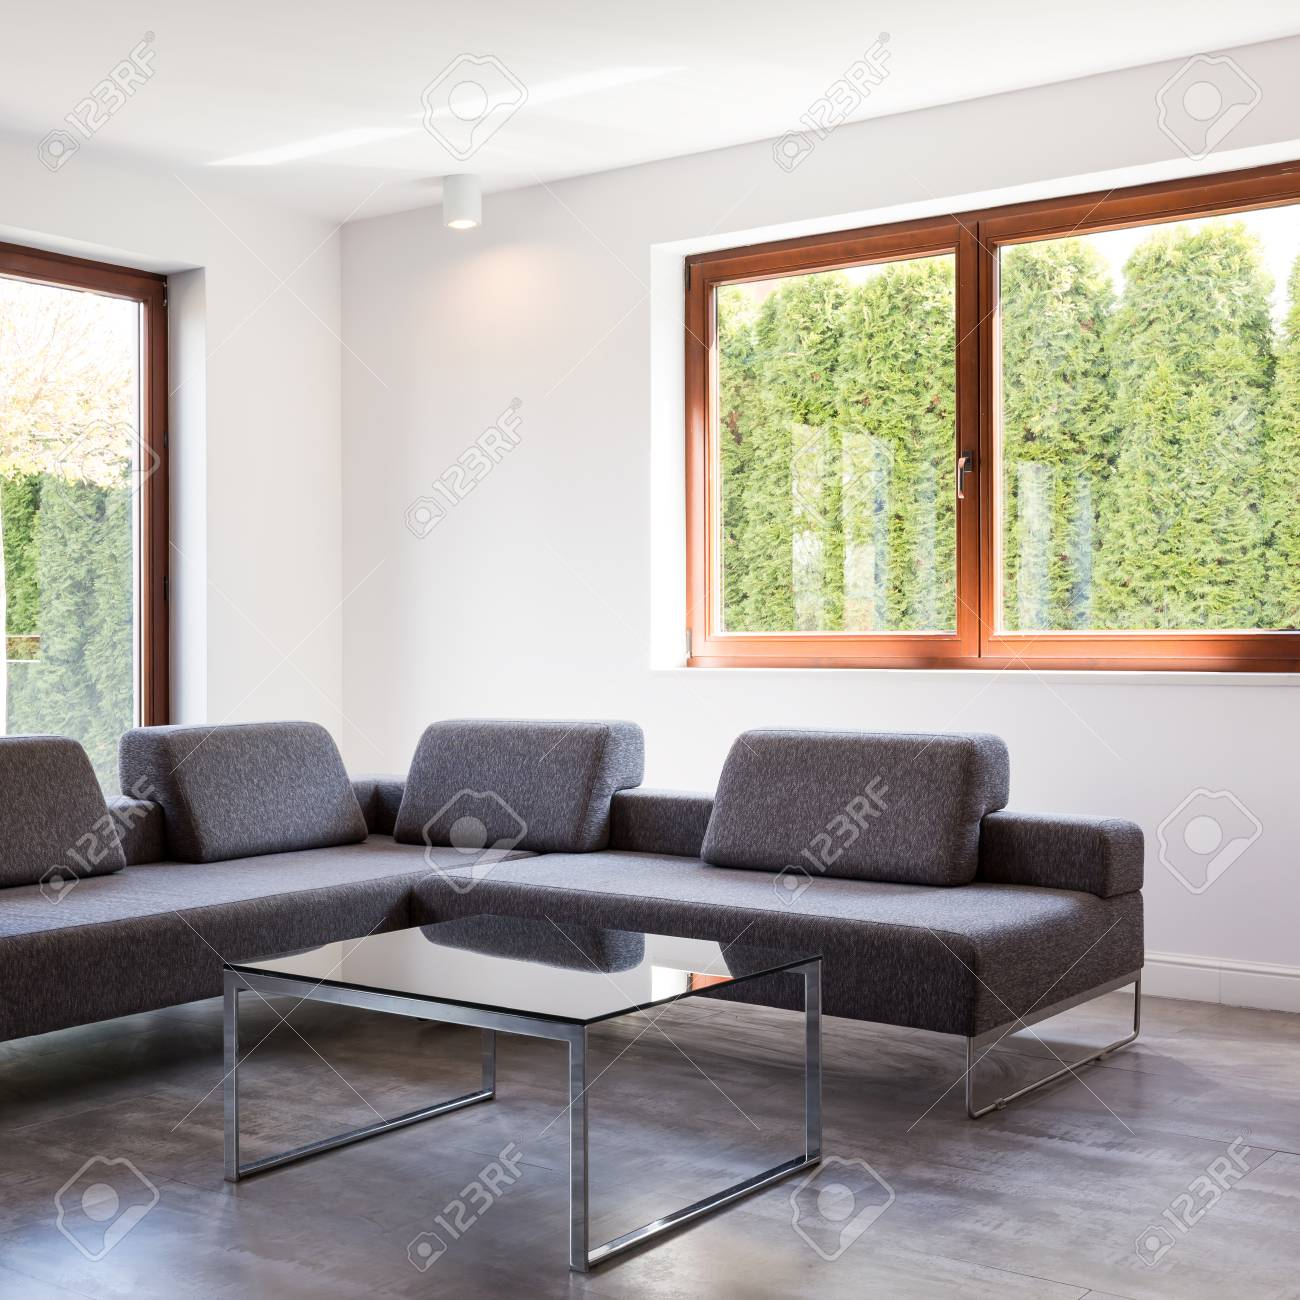 Modern Living Room With A Large Grey Sofa And A Glass Coffee